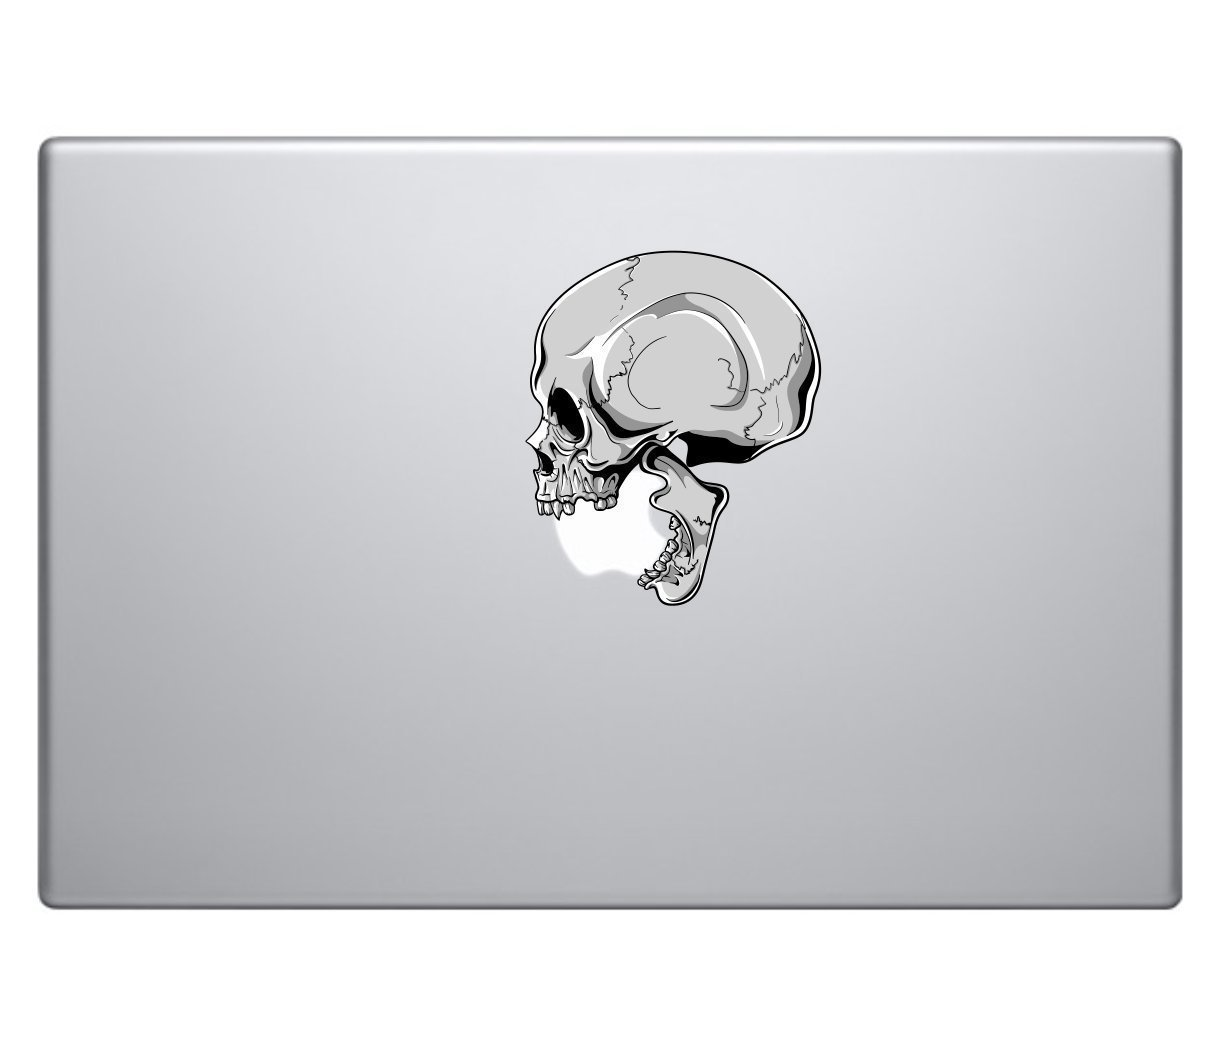 Human Skull Biting Apple Logo Vinyl Decal Sticker - Skin MacBook Pro Air Sticker 13 15 17 Laptop Sticker Zombie Sticker Self Adhesive Vinyl